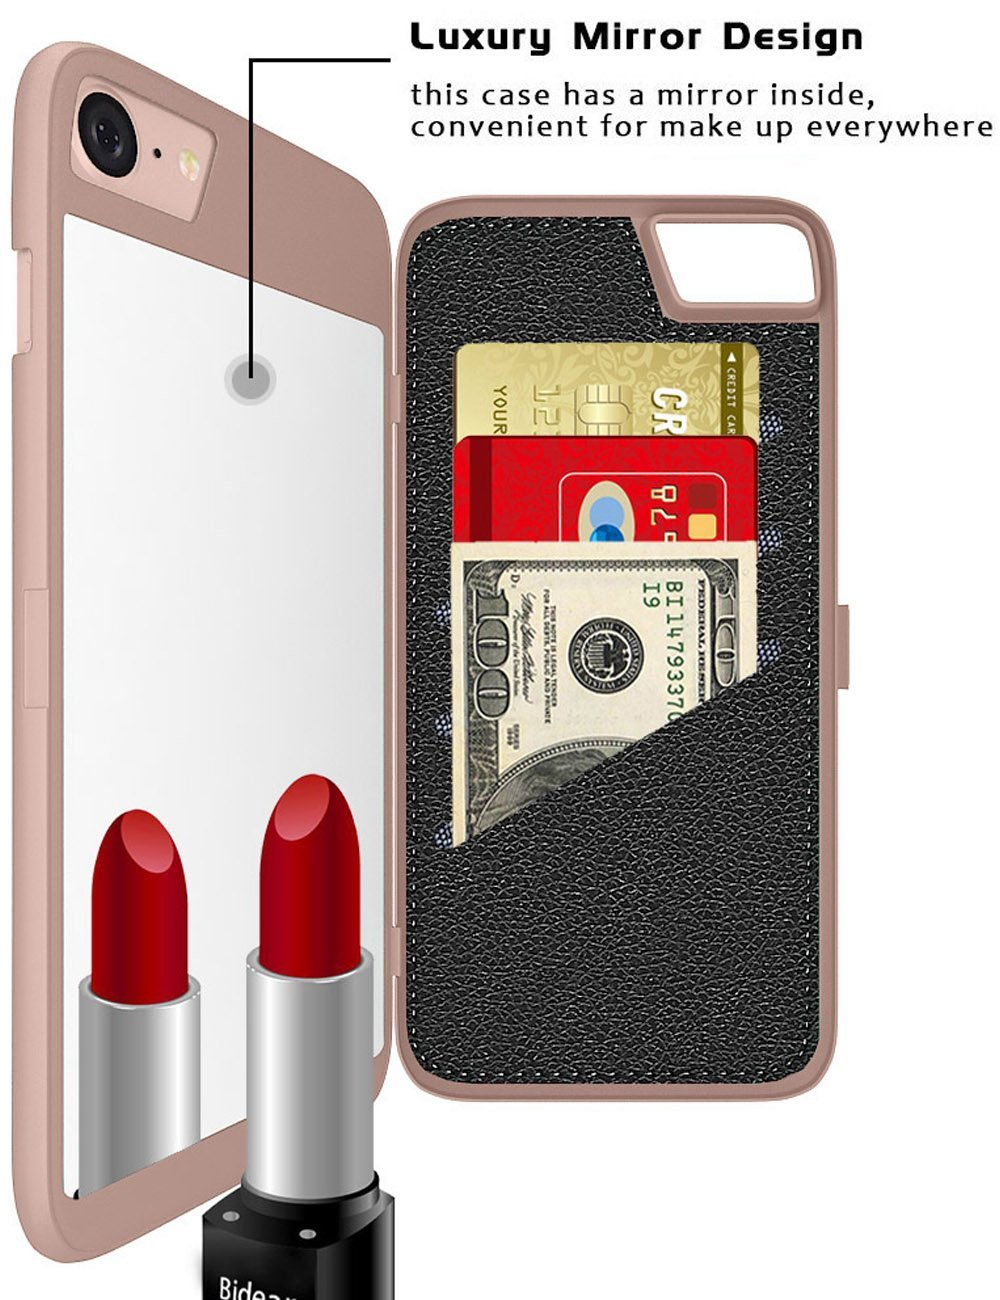 Mirror Wallet Case for iPhone 7/iPhone 8  4.7 Inches, iPhone 7/iPhone 8 Protective Hard Cover Case with Card Slot and Kickstand feature for Women 7